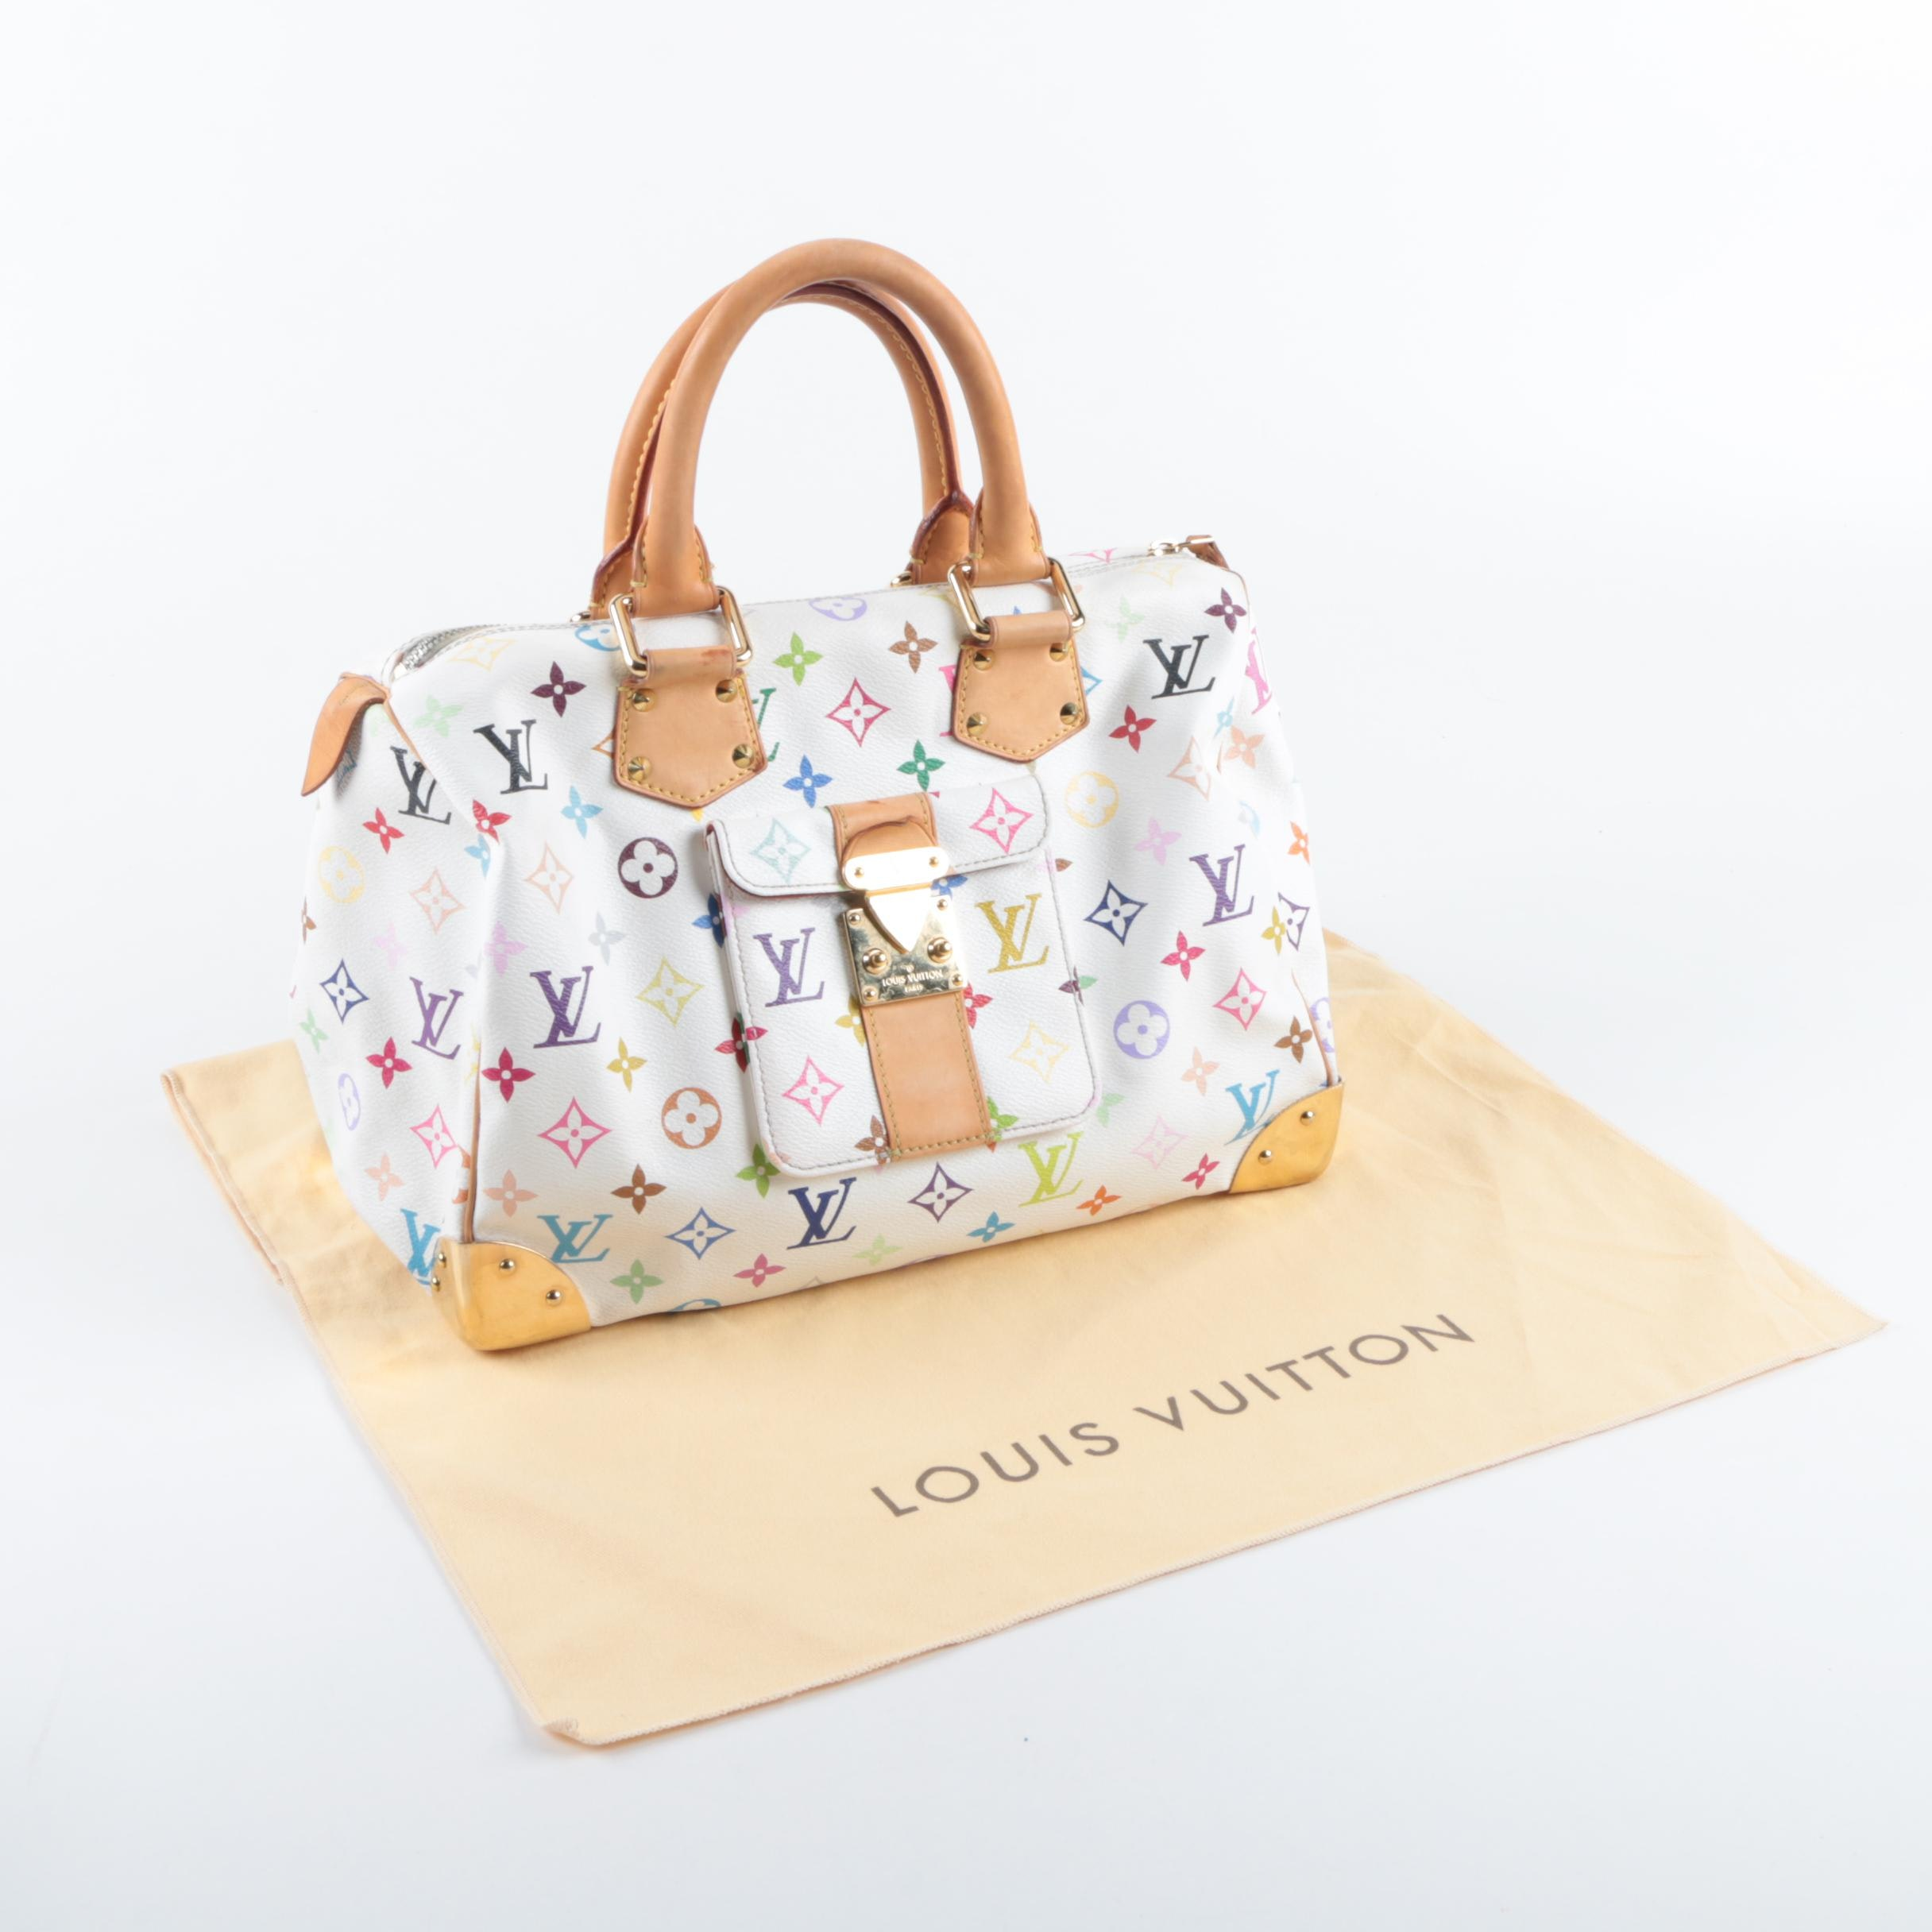 Louis Vuitton Monogram Multicolore Canvas Handbag